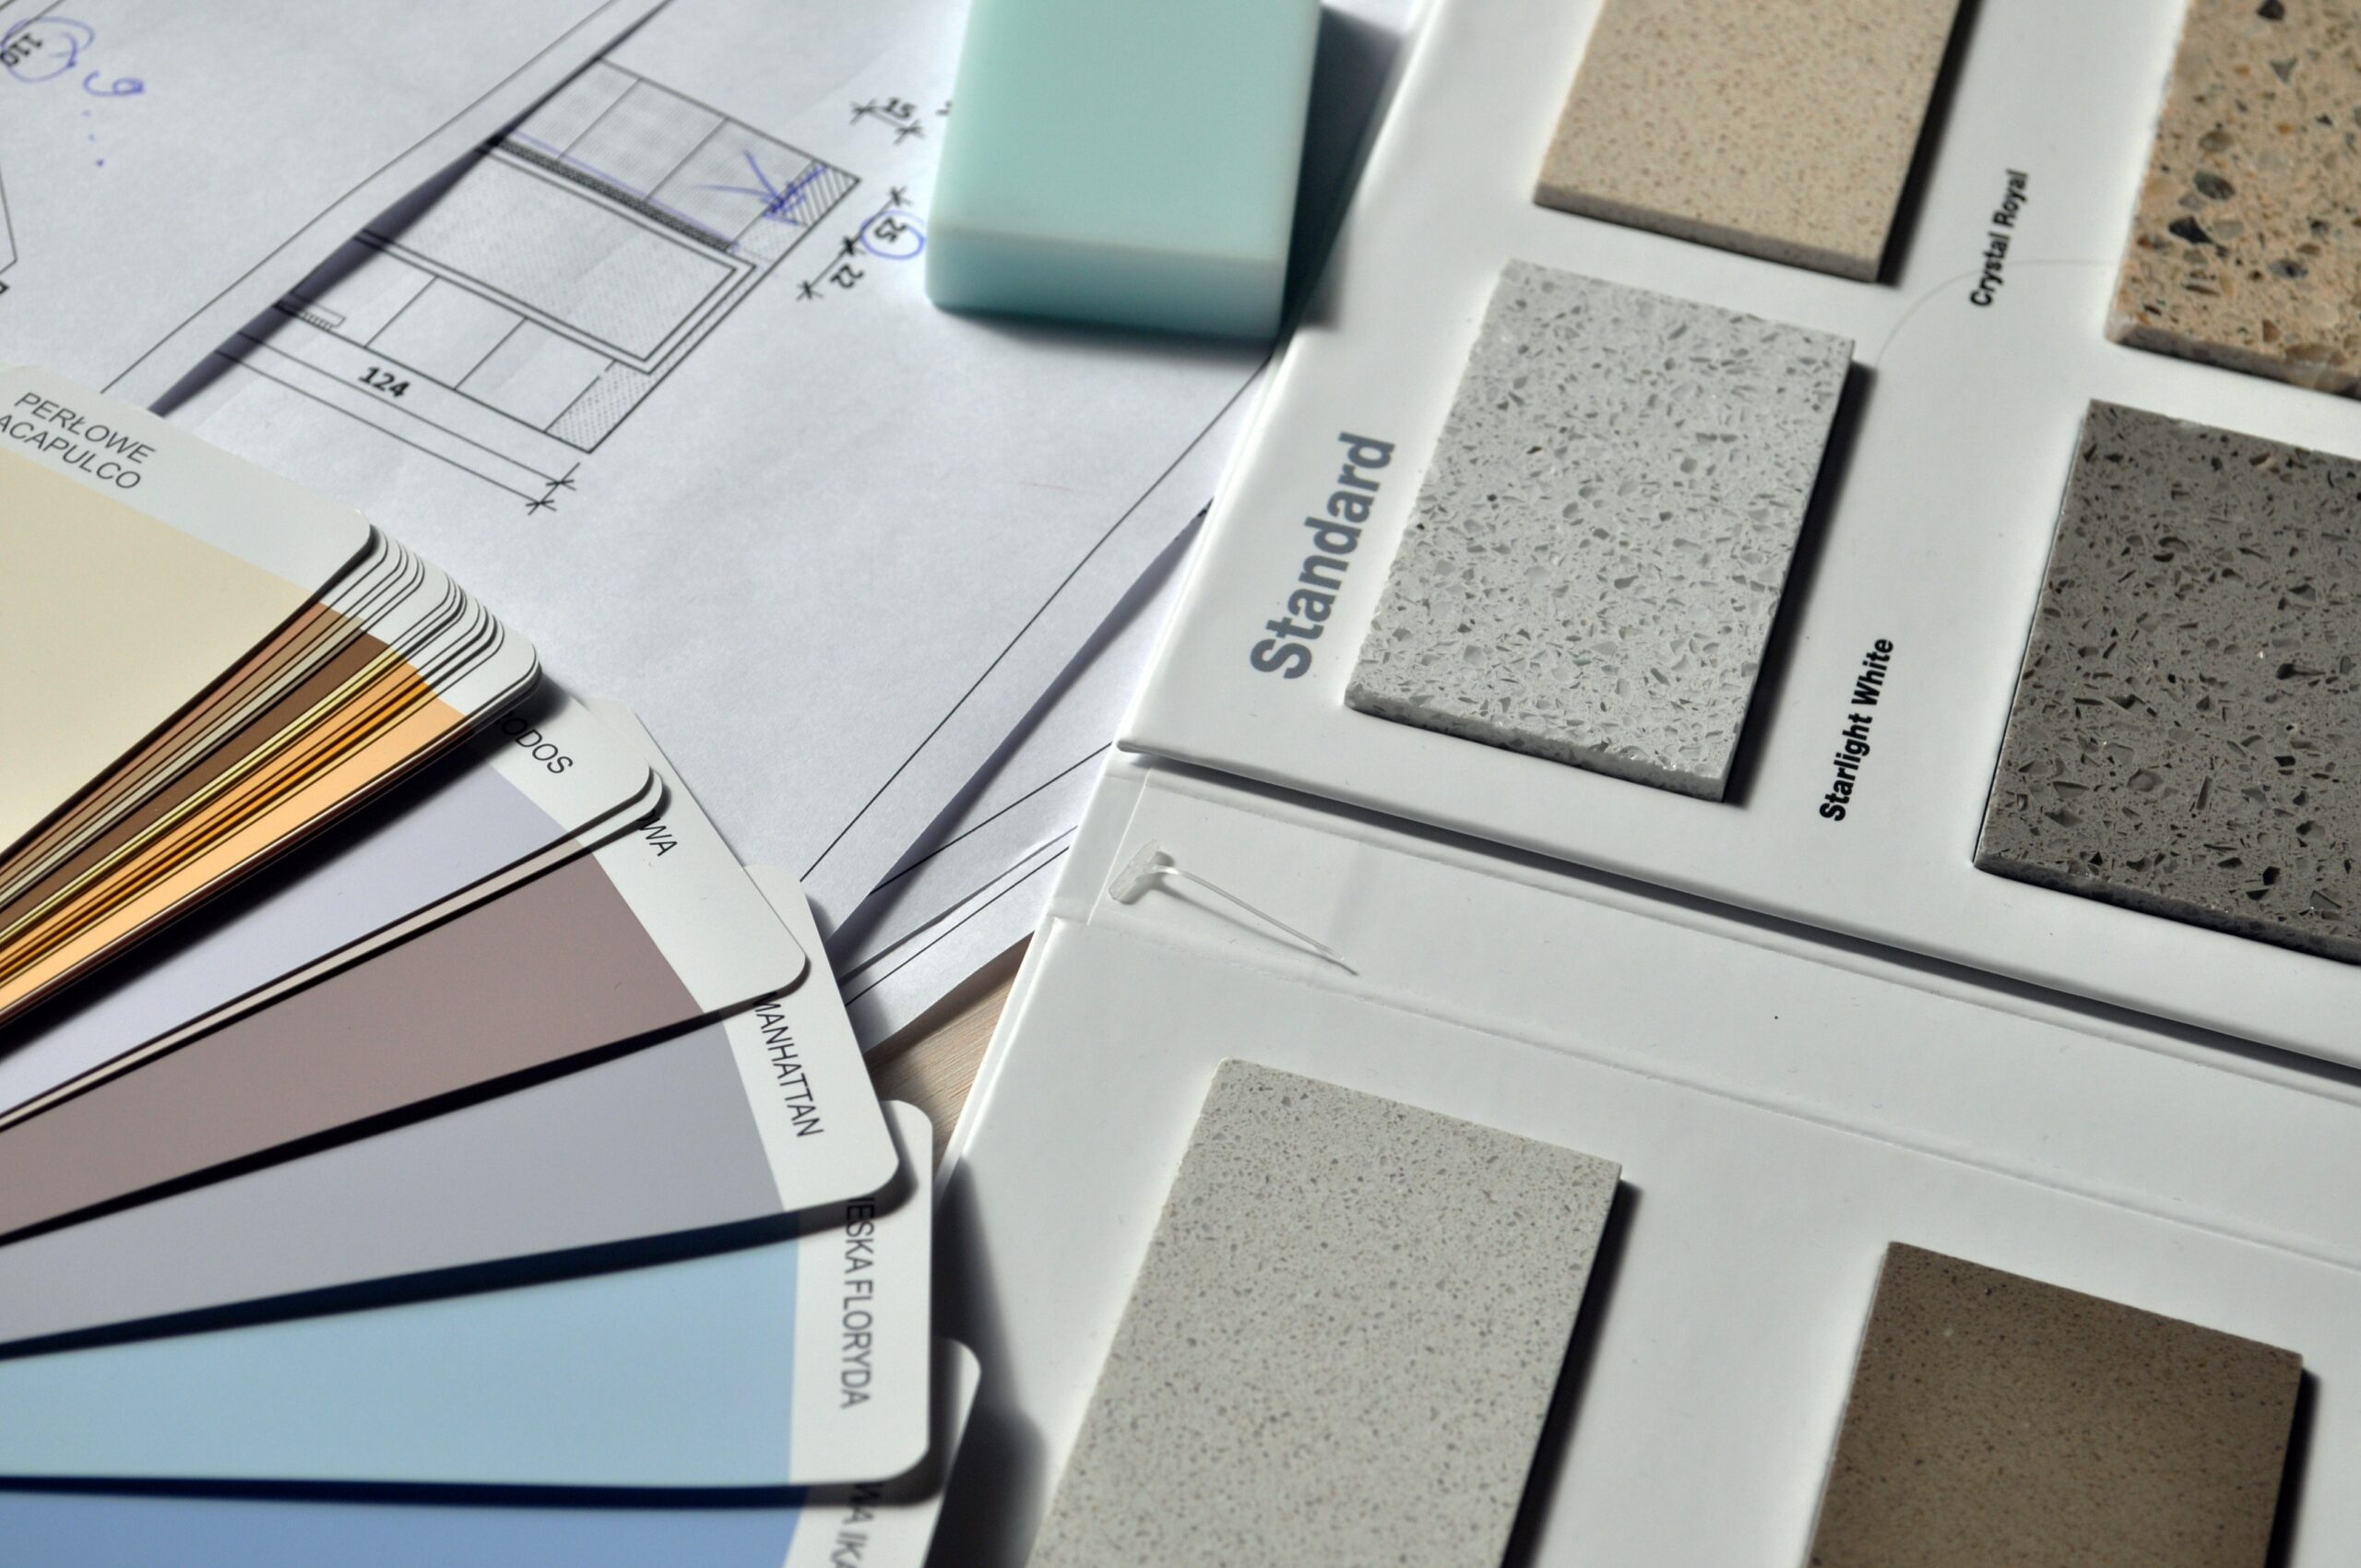 Paint and countertop samples